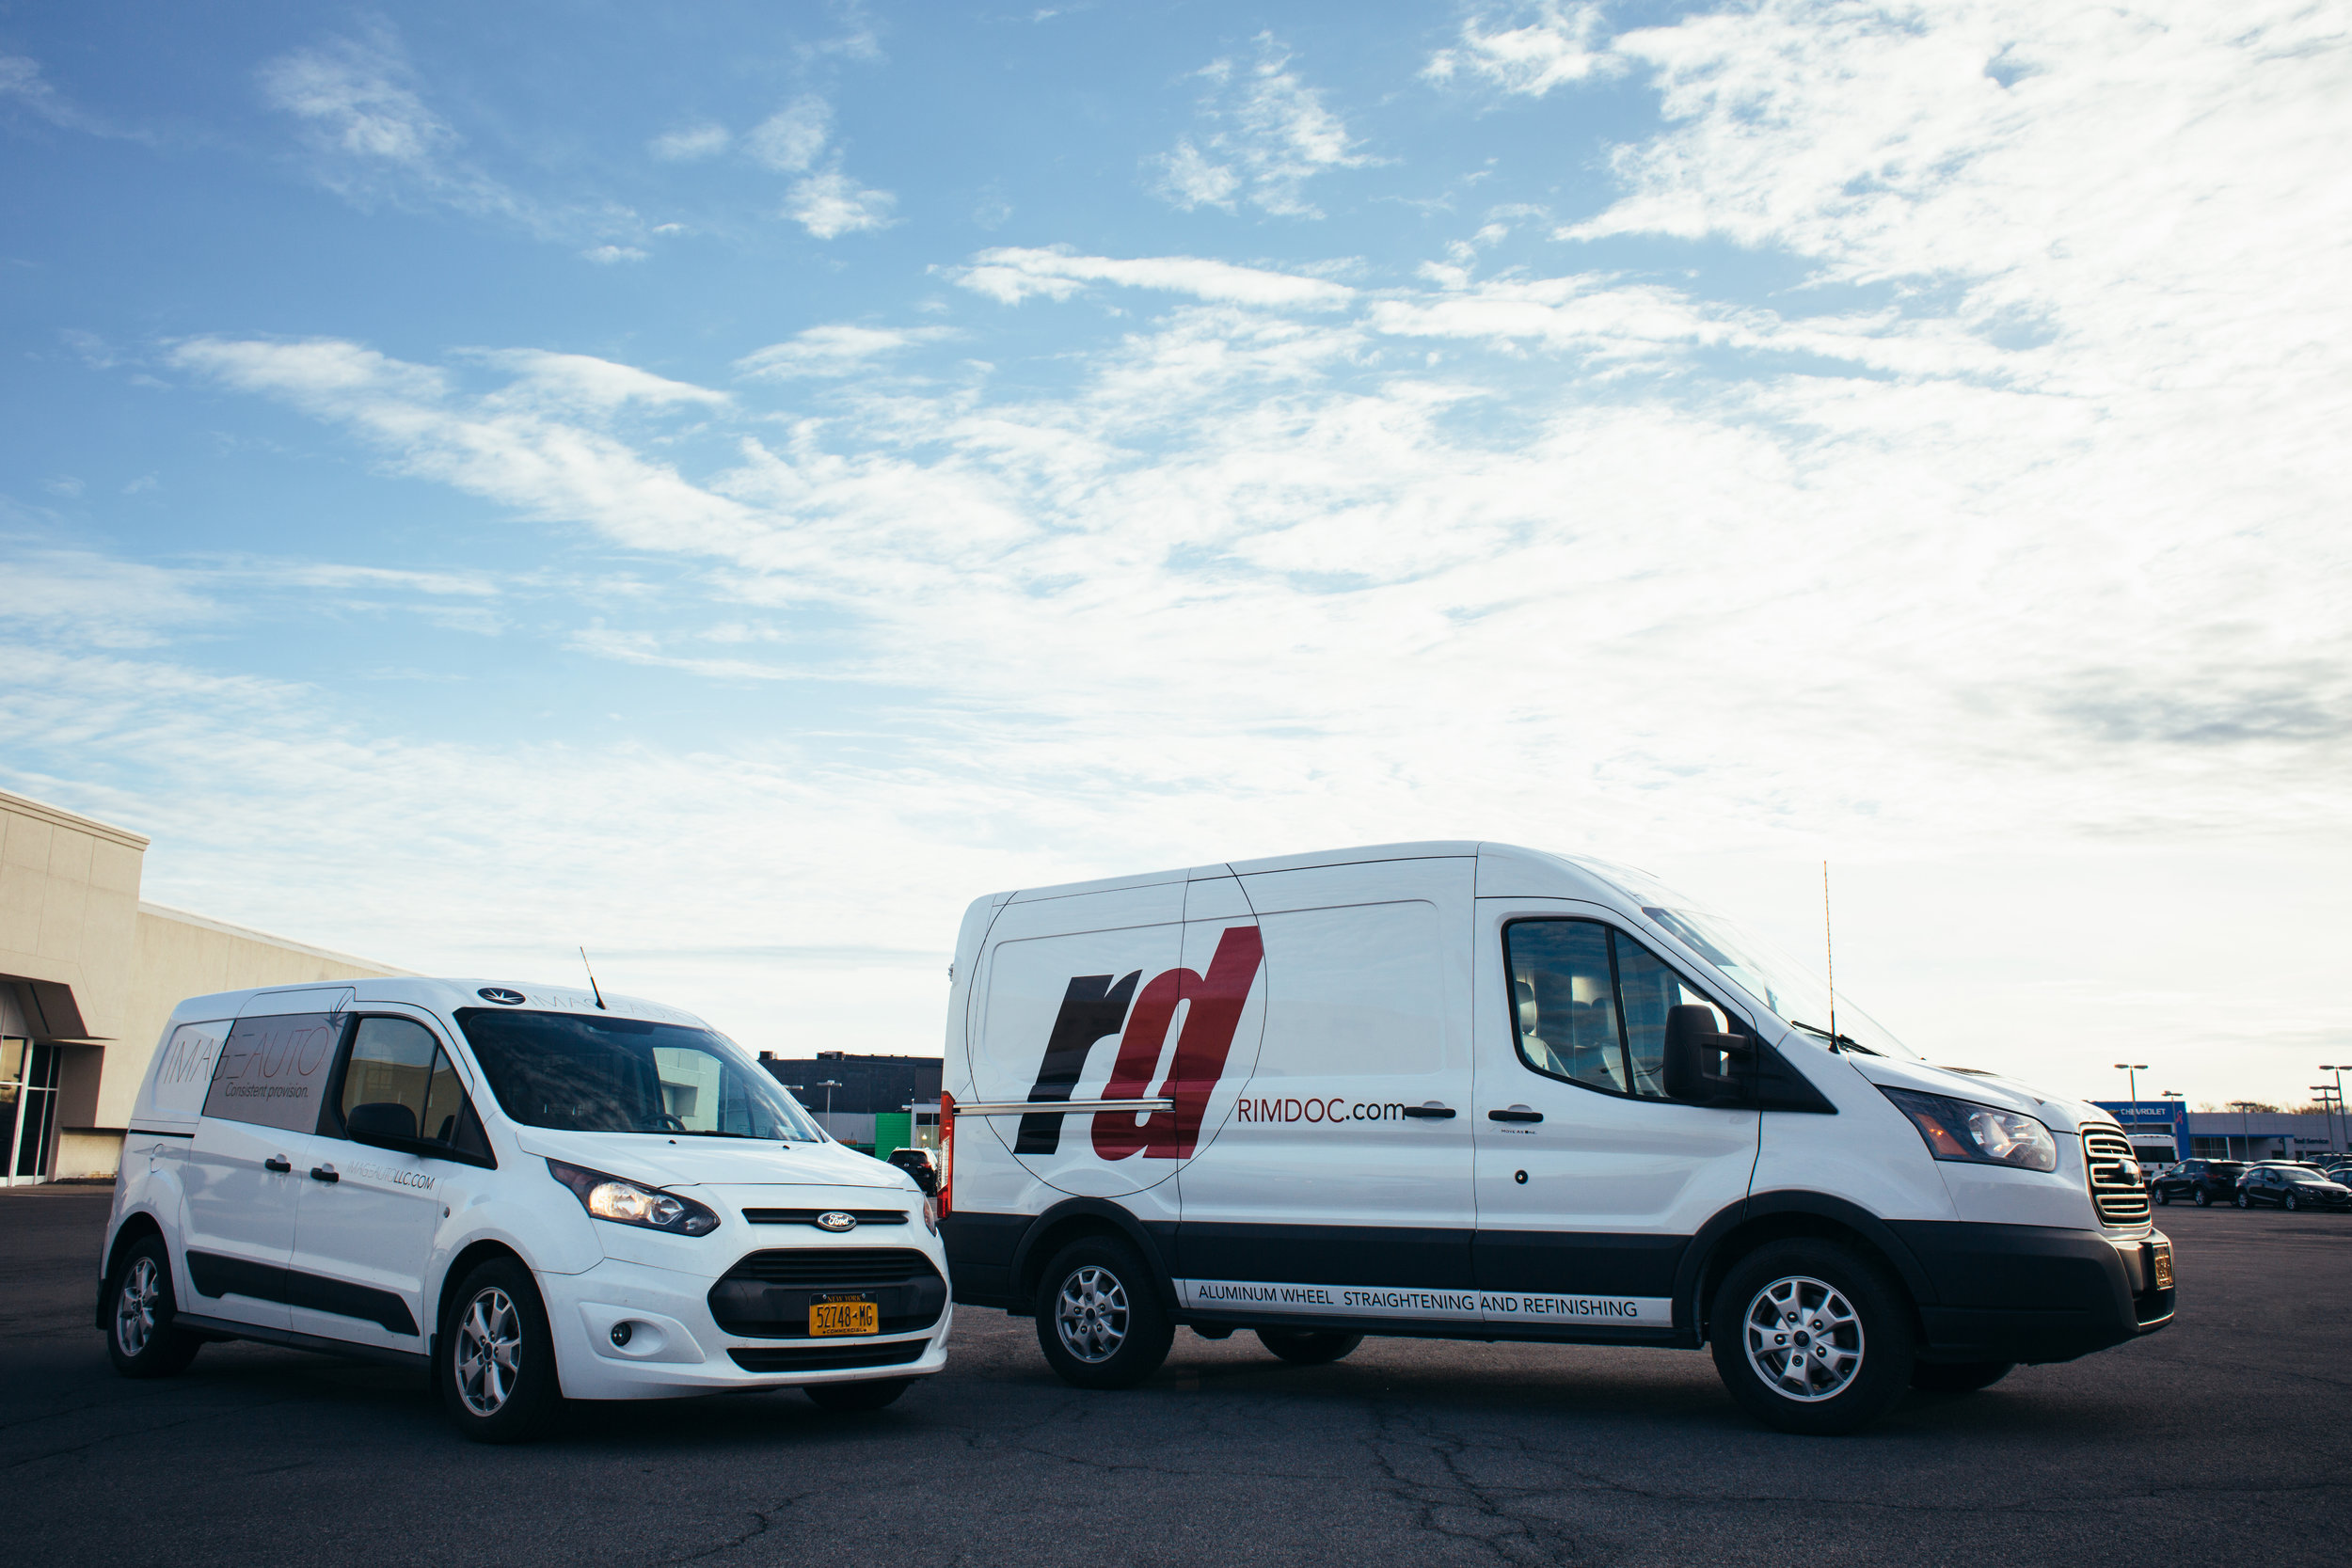 Dealership Services - On-Site Reconditioning Solutions